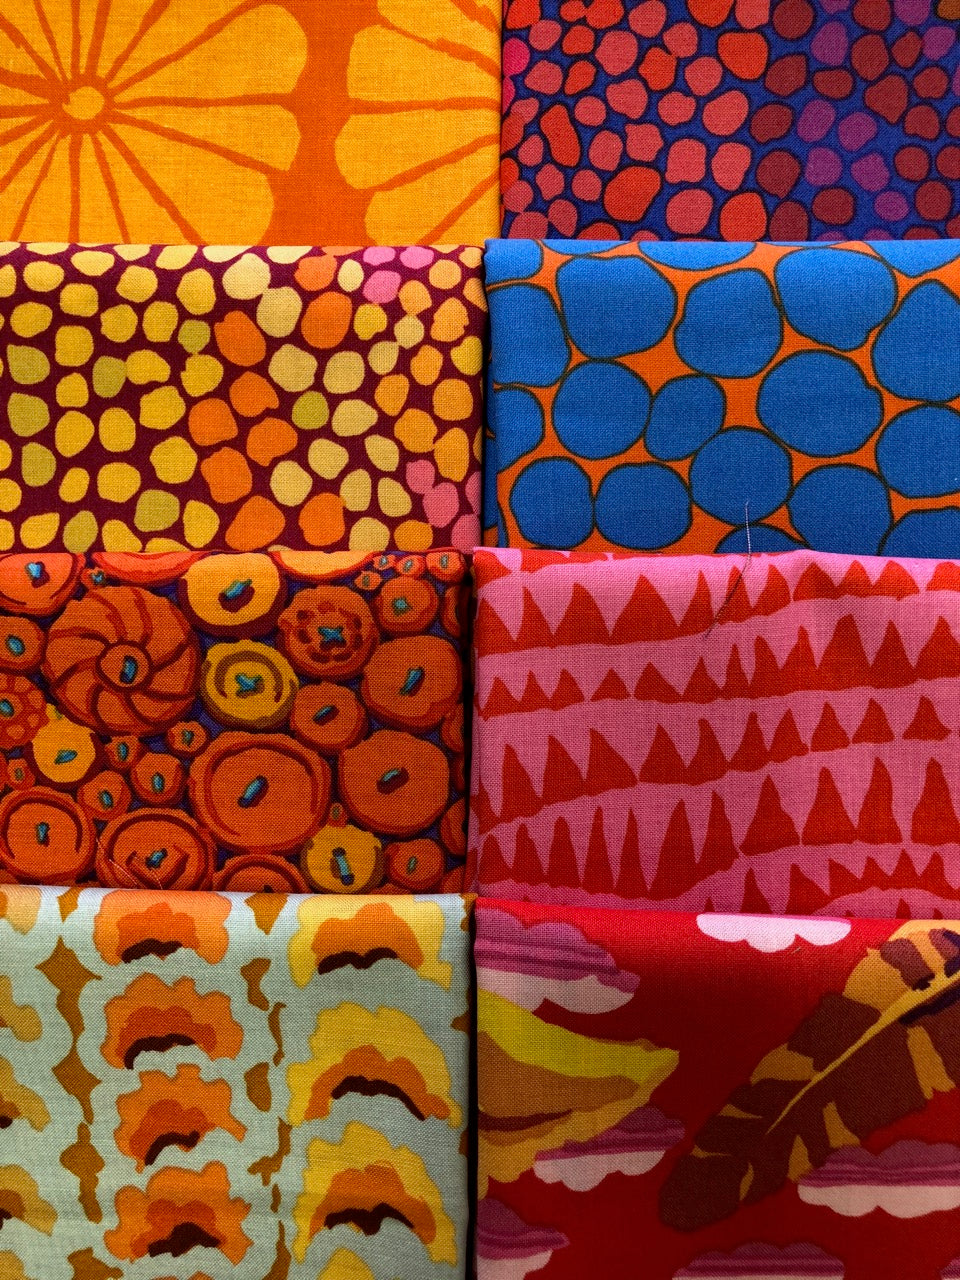 KAFFE February 2021 tangerine 8 half yards